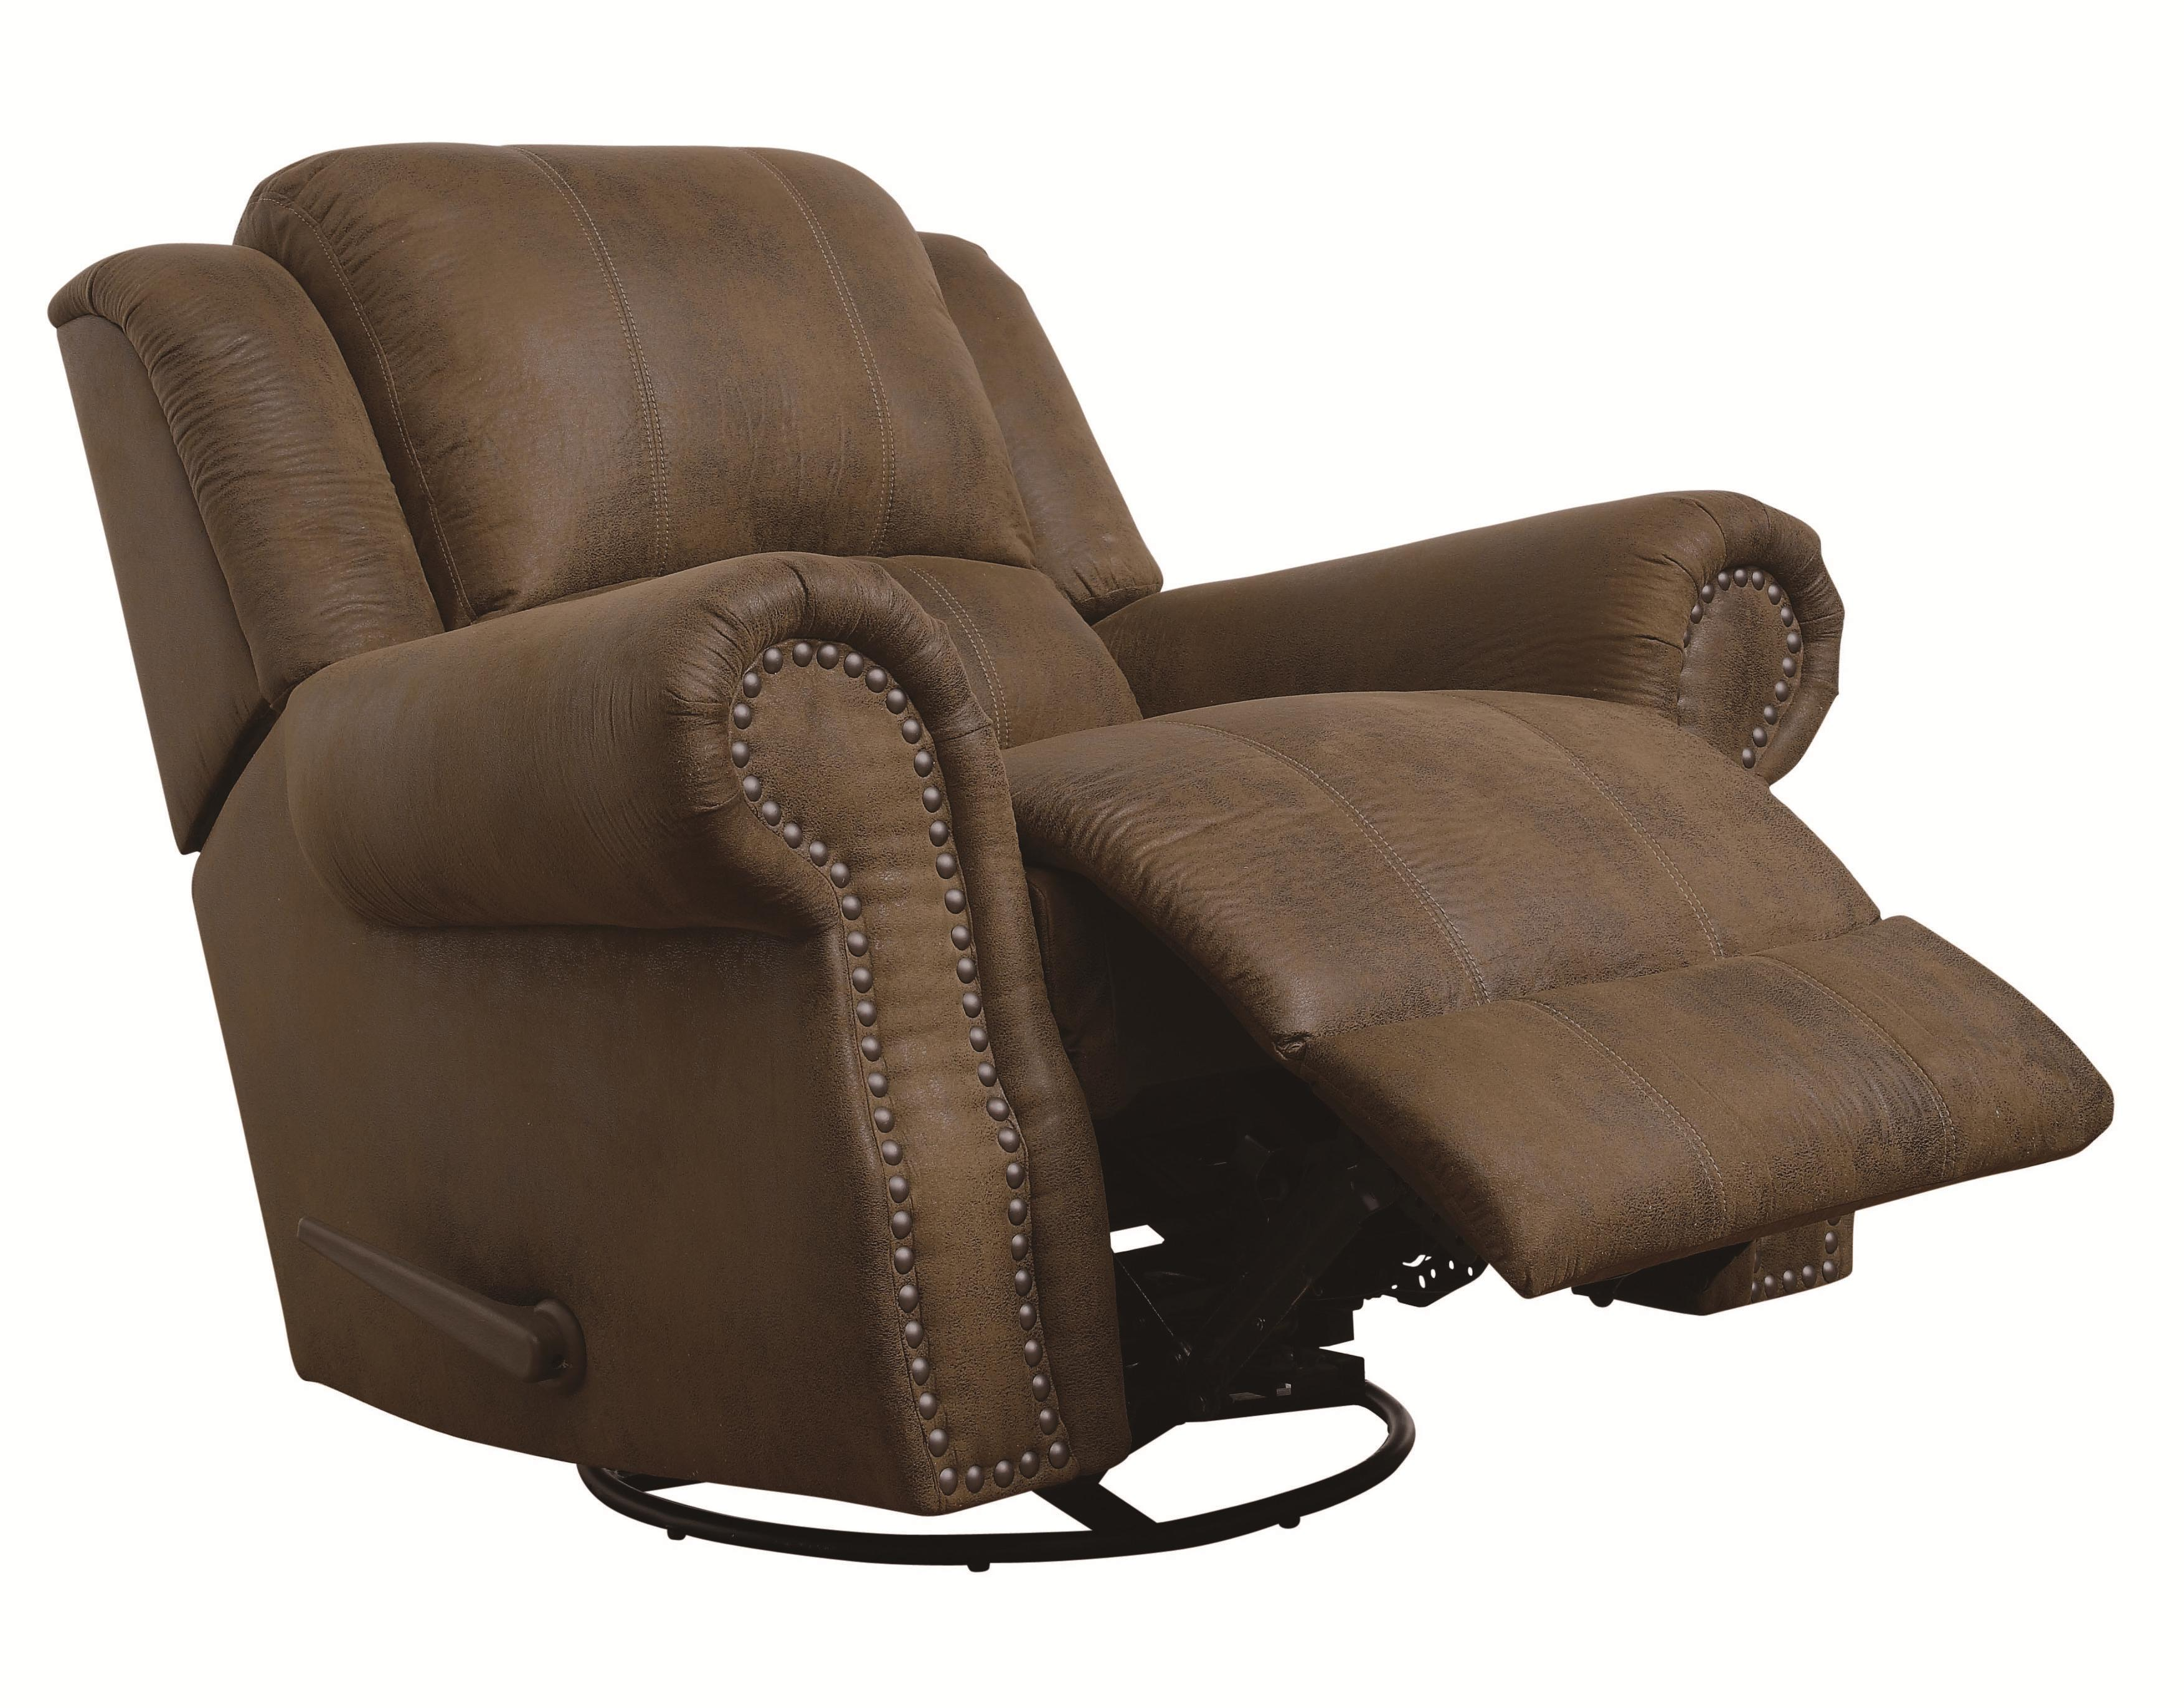 Coaster Sir Rawlinson Rocker Recliner with Swivel - Item Number: 650153